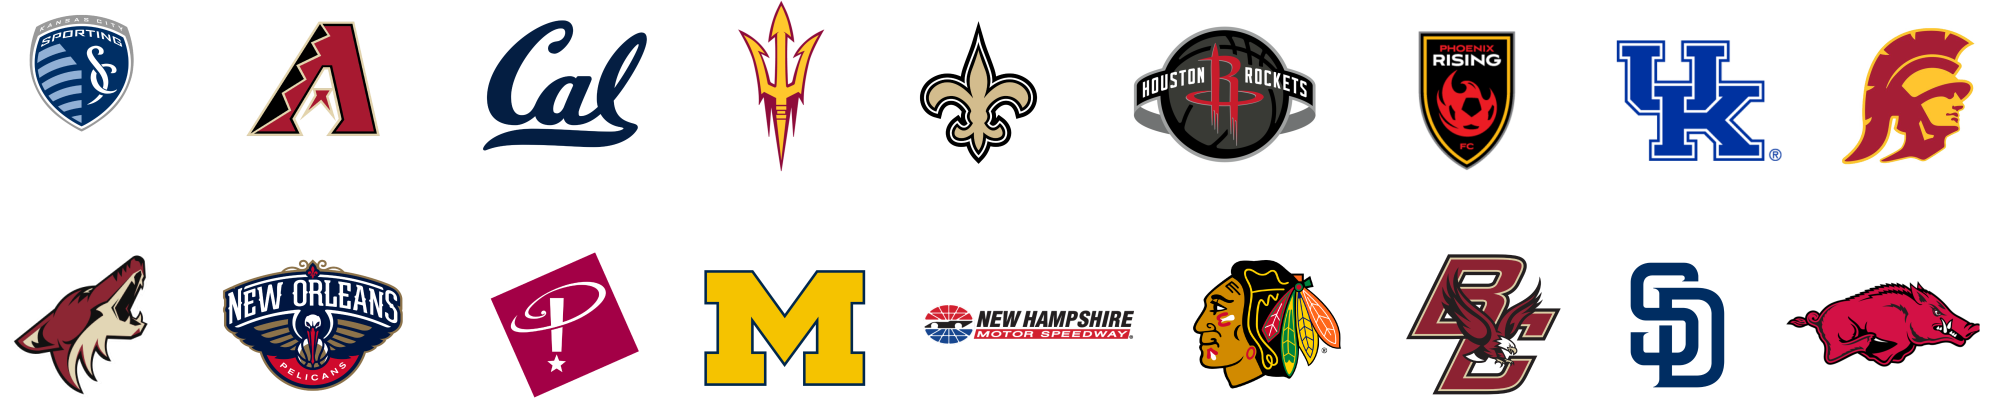 Sports Entertainment Logos